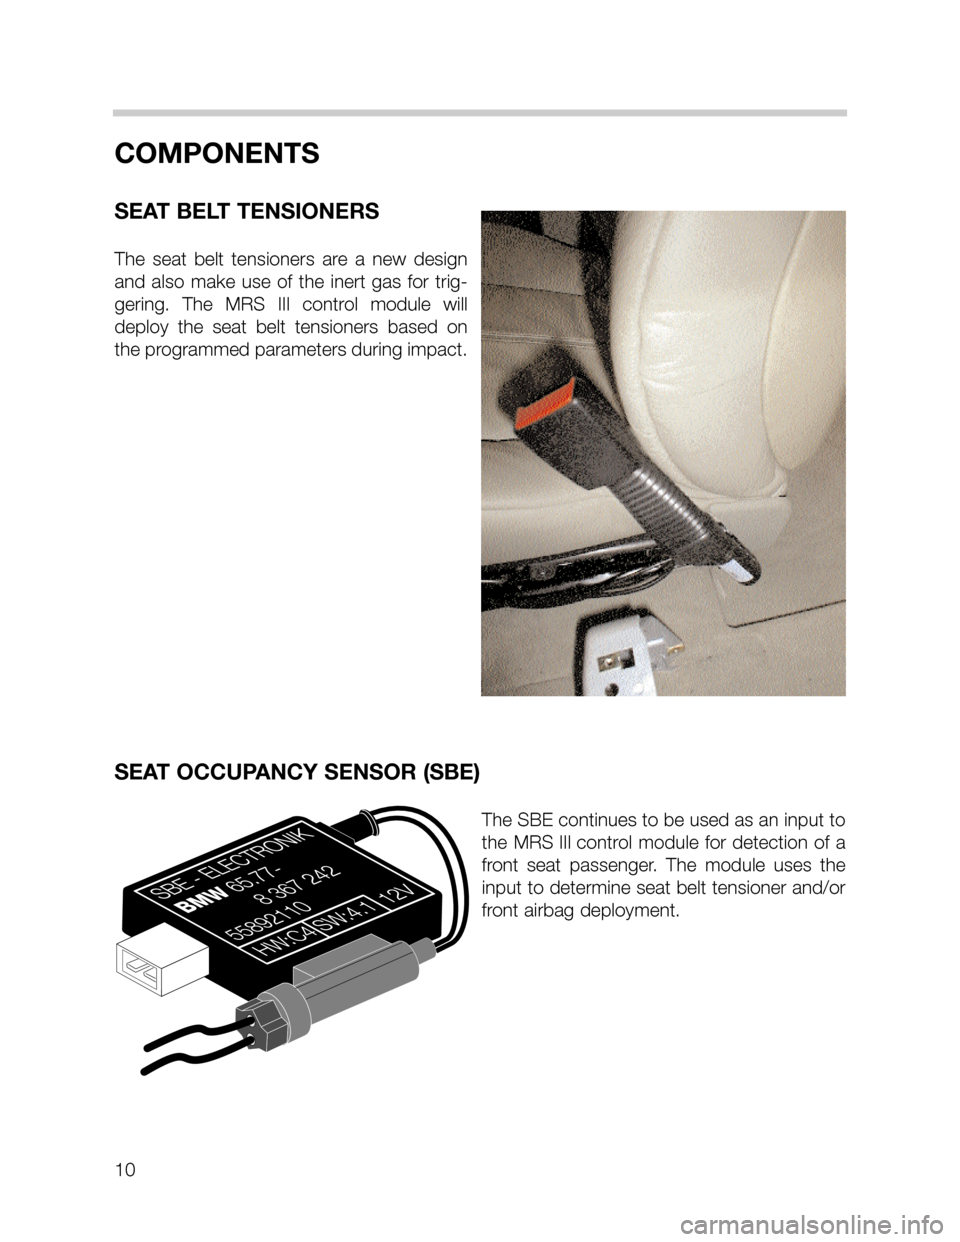 BMW 3 SERIES SEDAN 2003 E46 MRSIII Multiple Restraint System Manual, Page 10